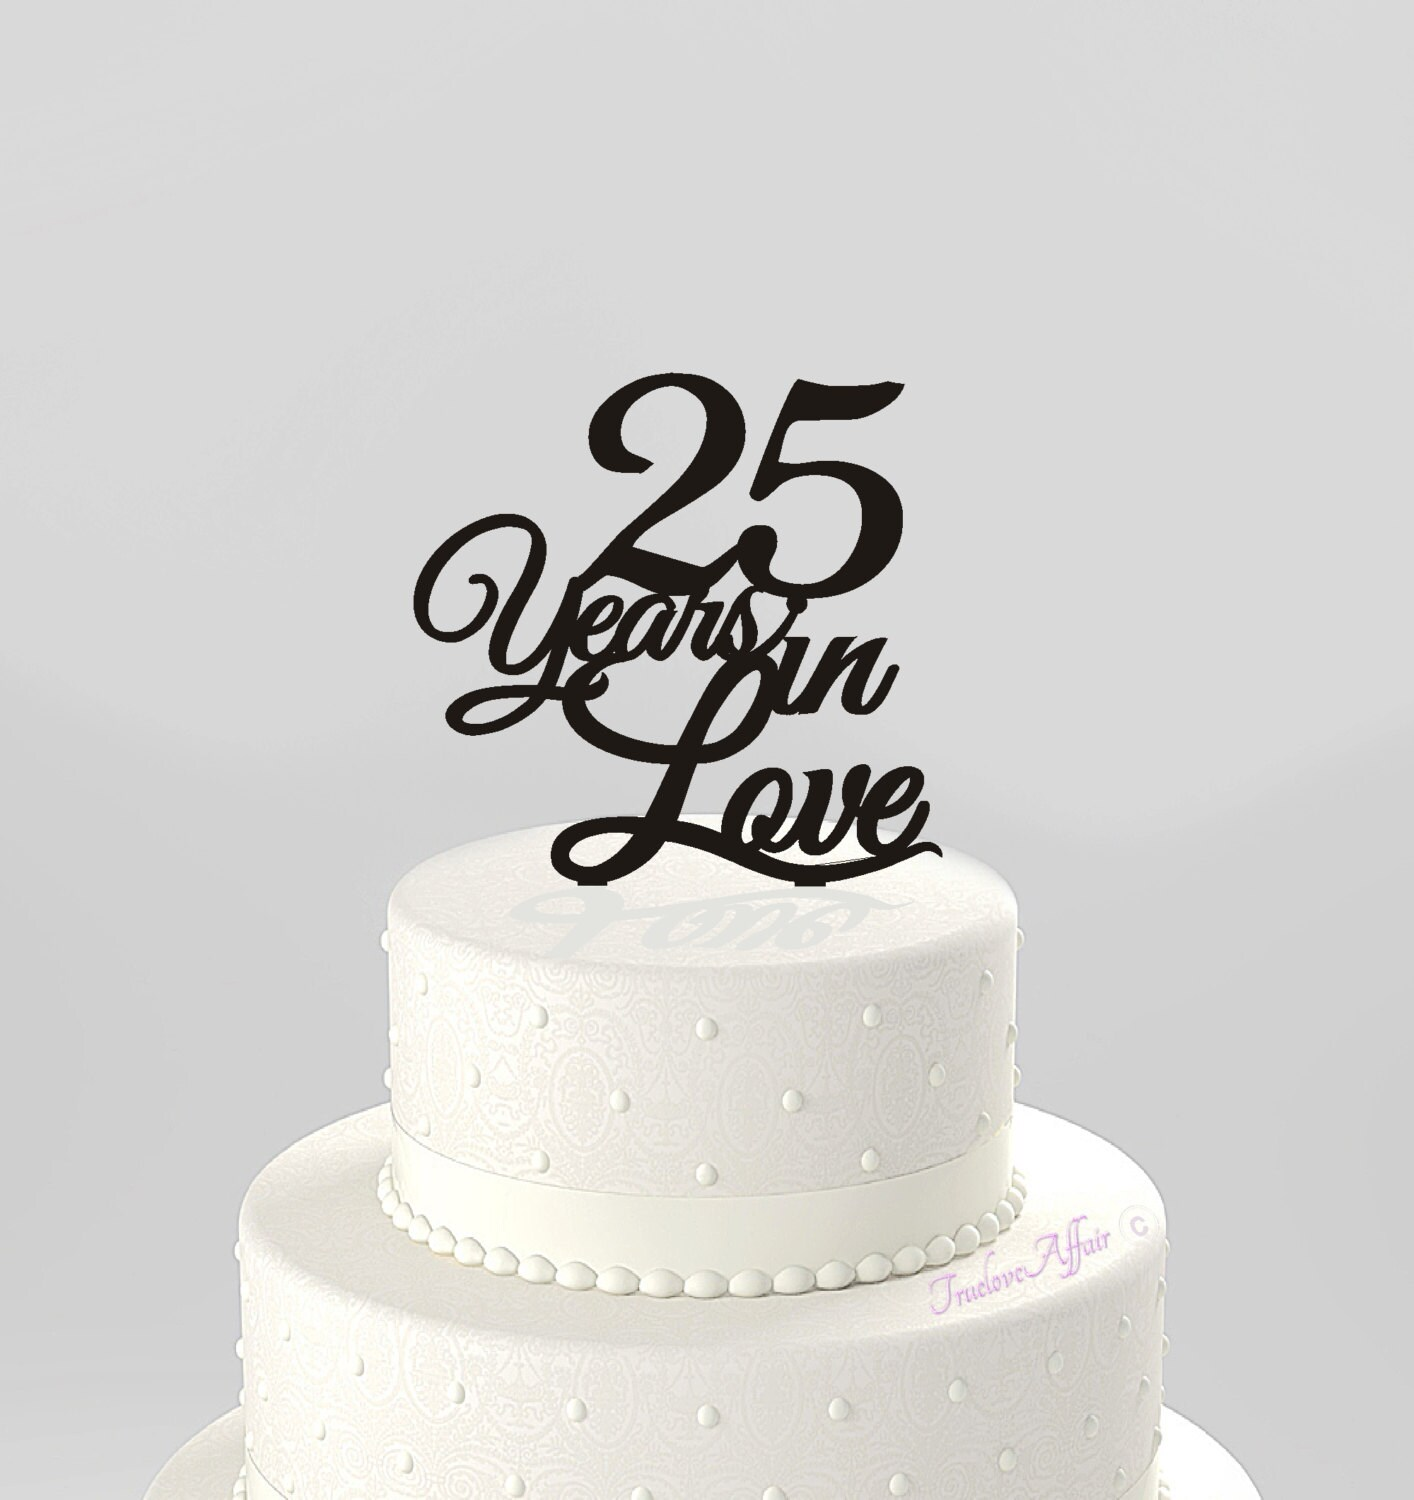 Love Anniversary Cake Images : Anniversary Cake Topper 25 Years in Love Acrylic Cake Topper